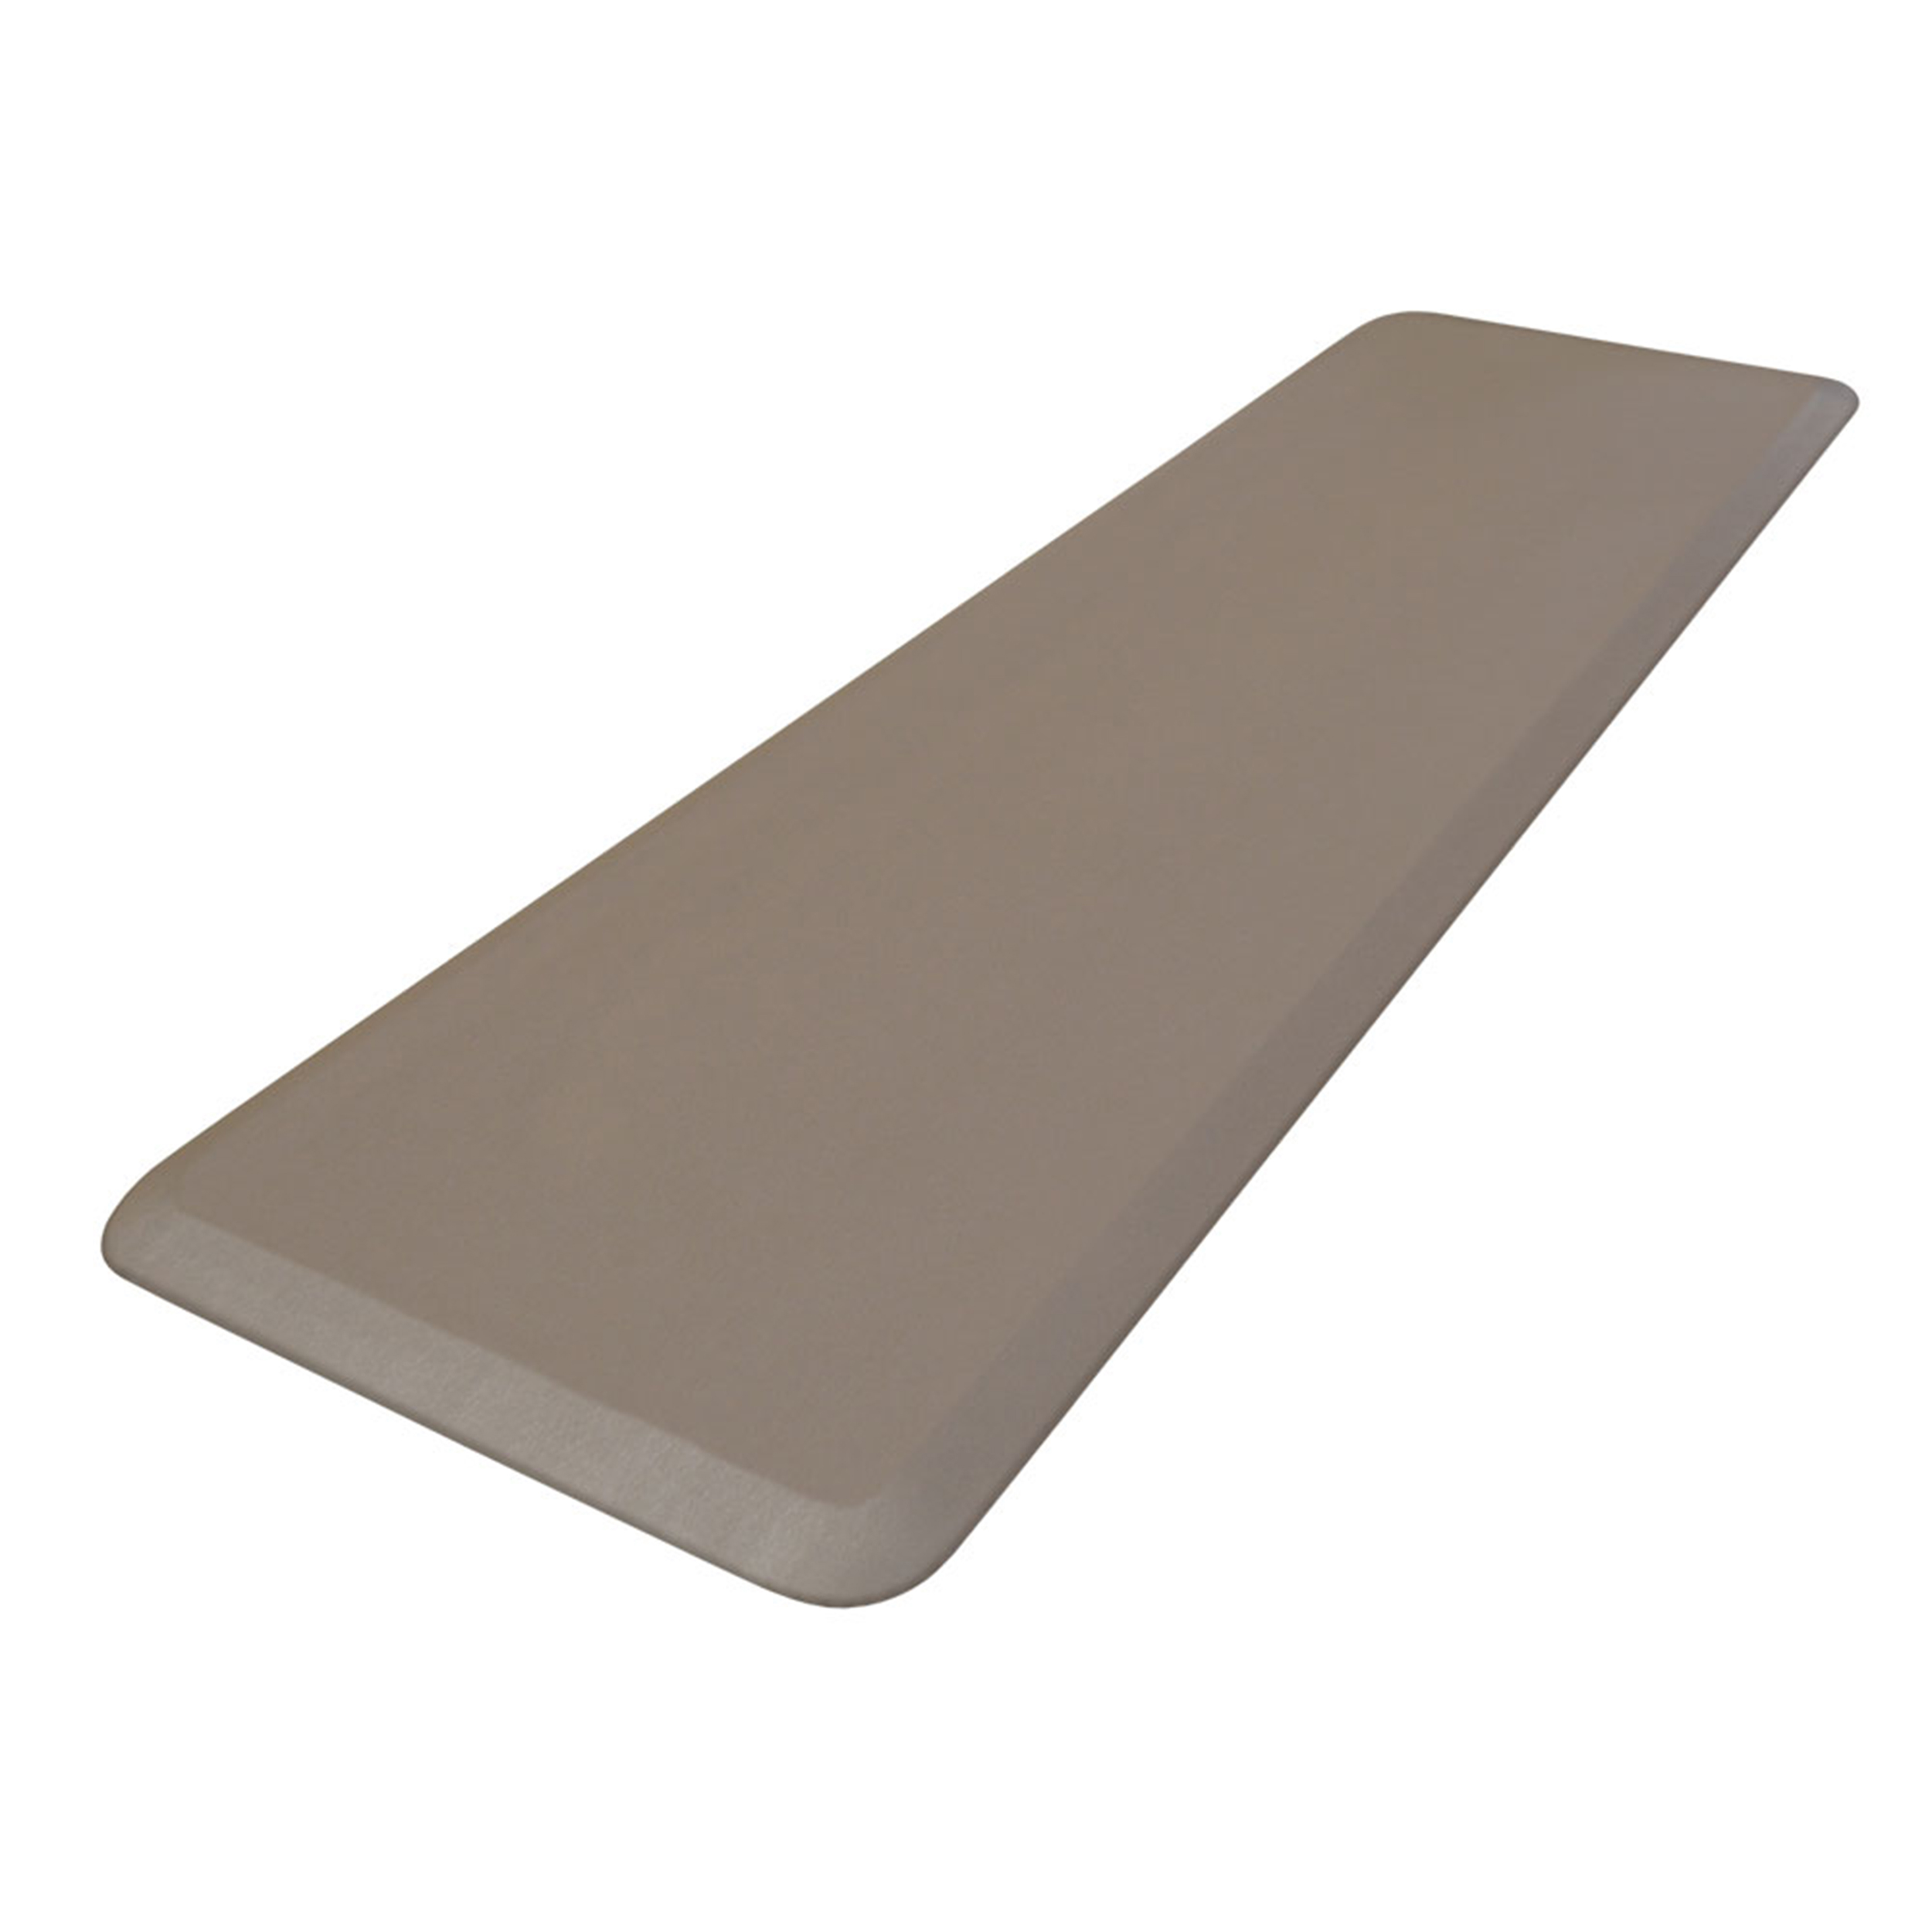 Eco-Pro Commercial Mat, Taupe, 20